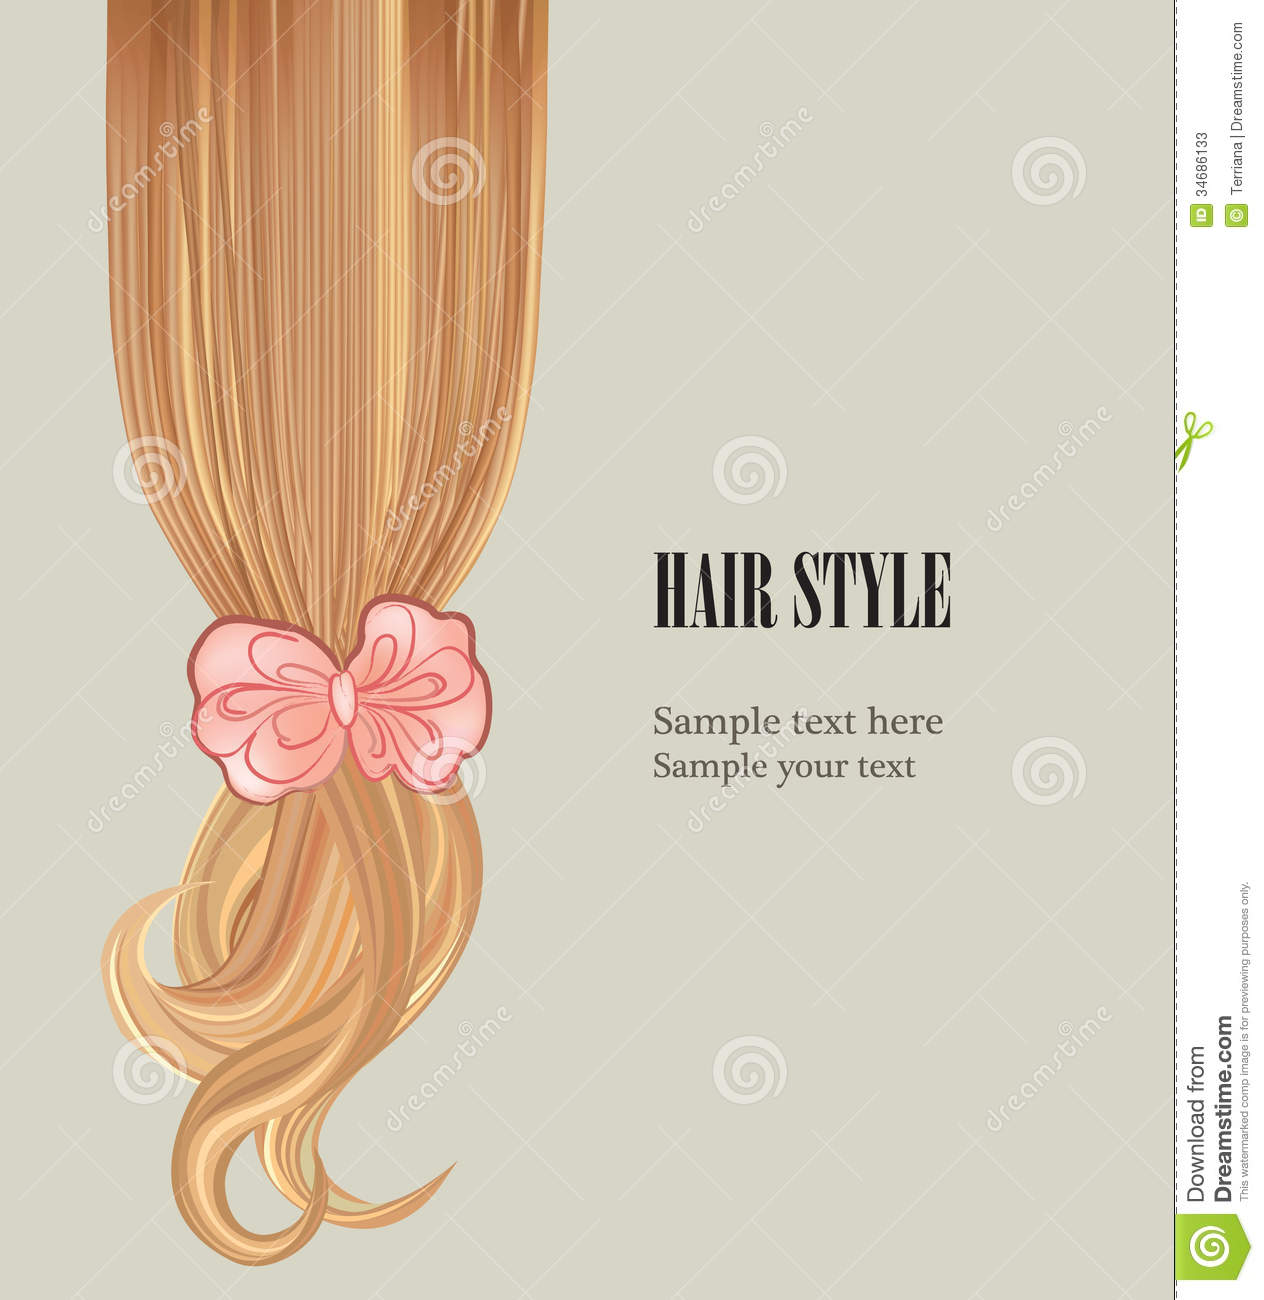 HD wallpapers hairstyle ribbon